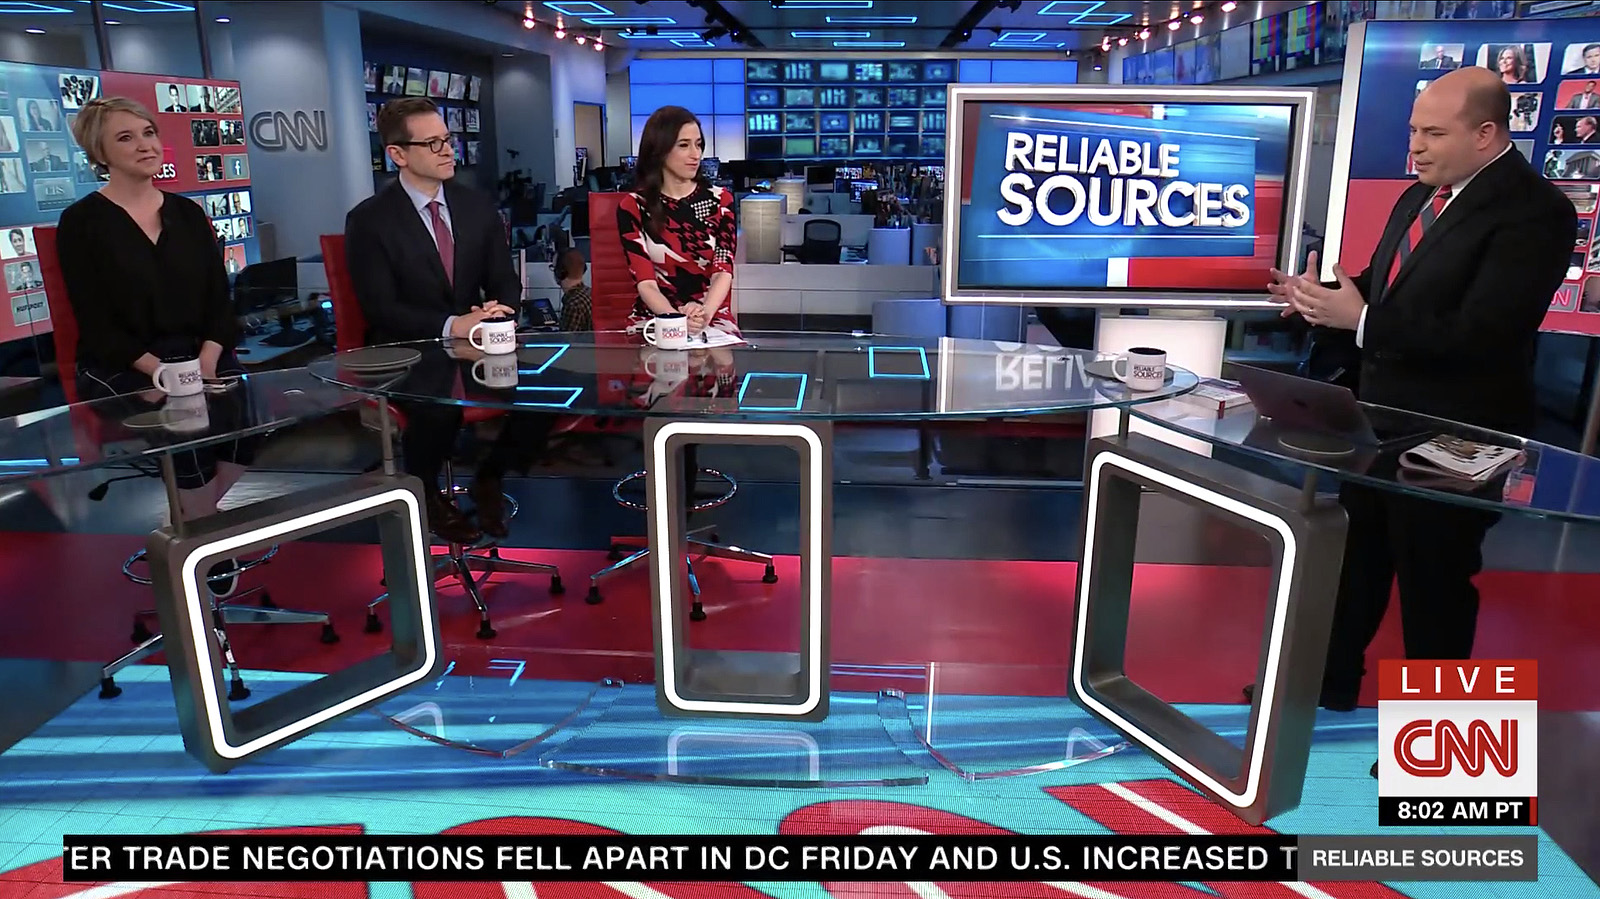 NCS_CNN-Studio-17n-2019_0048